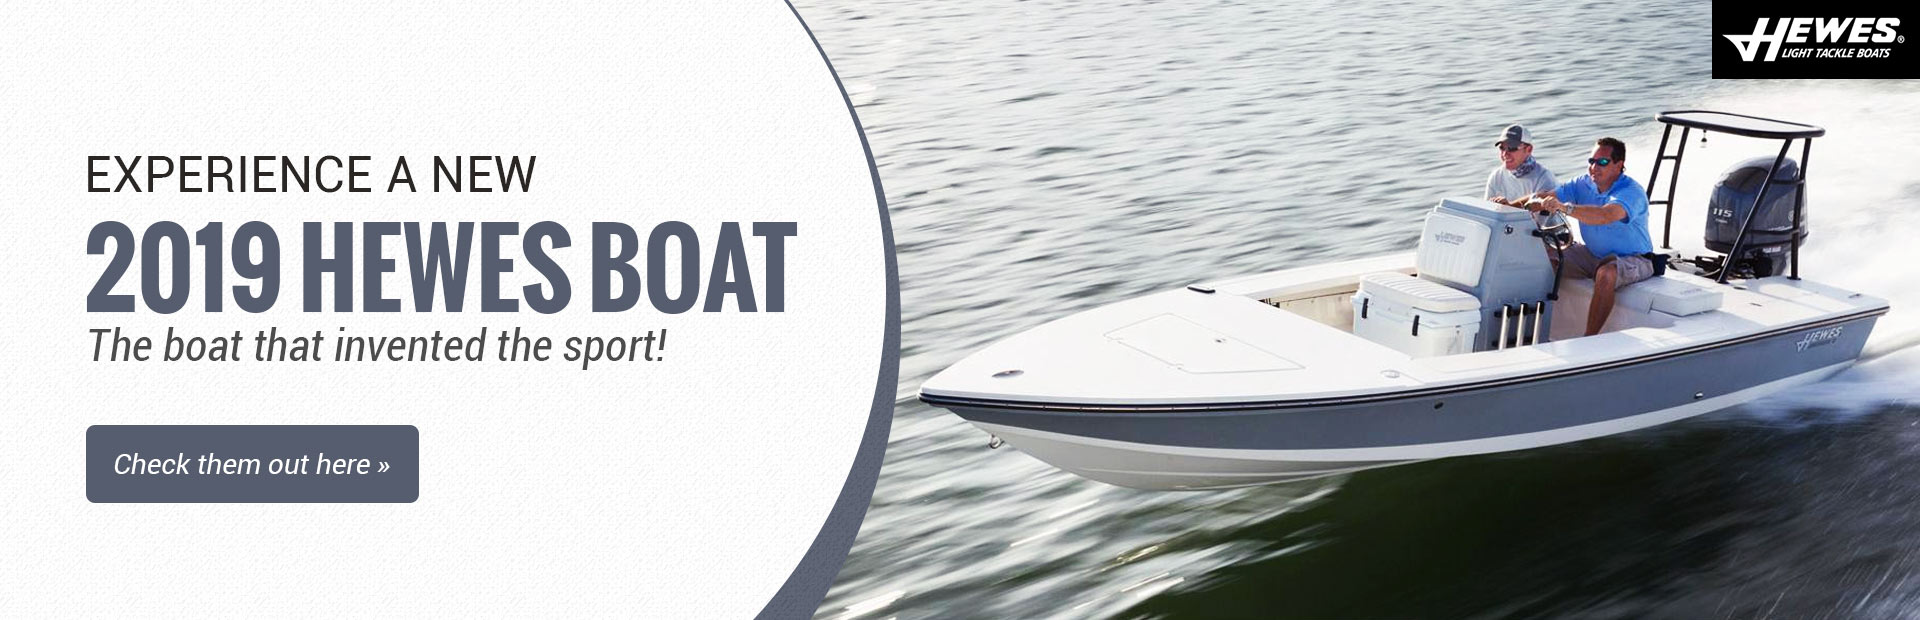 Experience a New 2019 Hewes Boat: Click here to view the models.